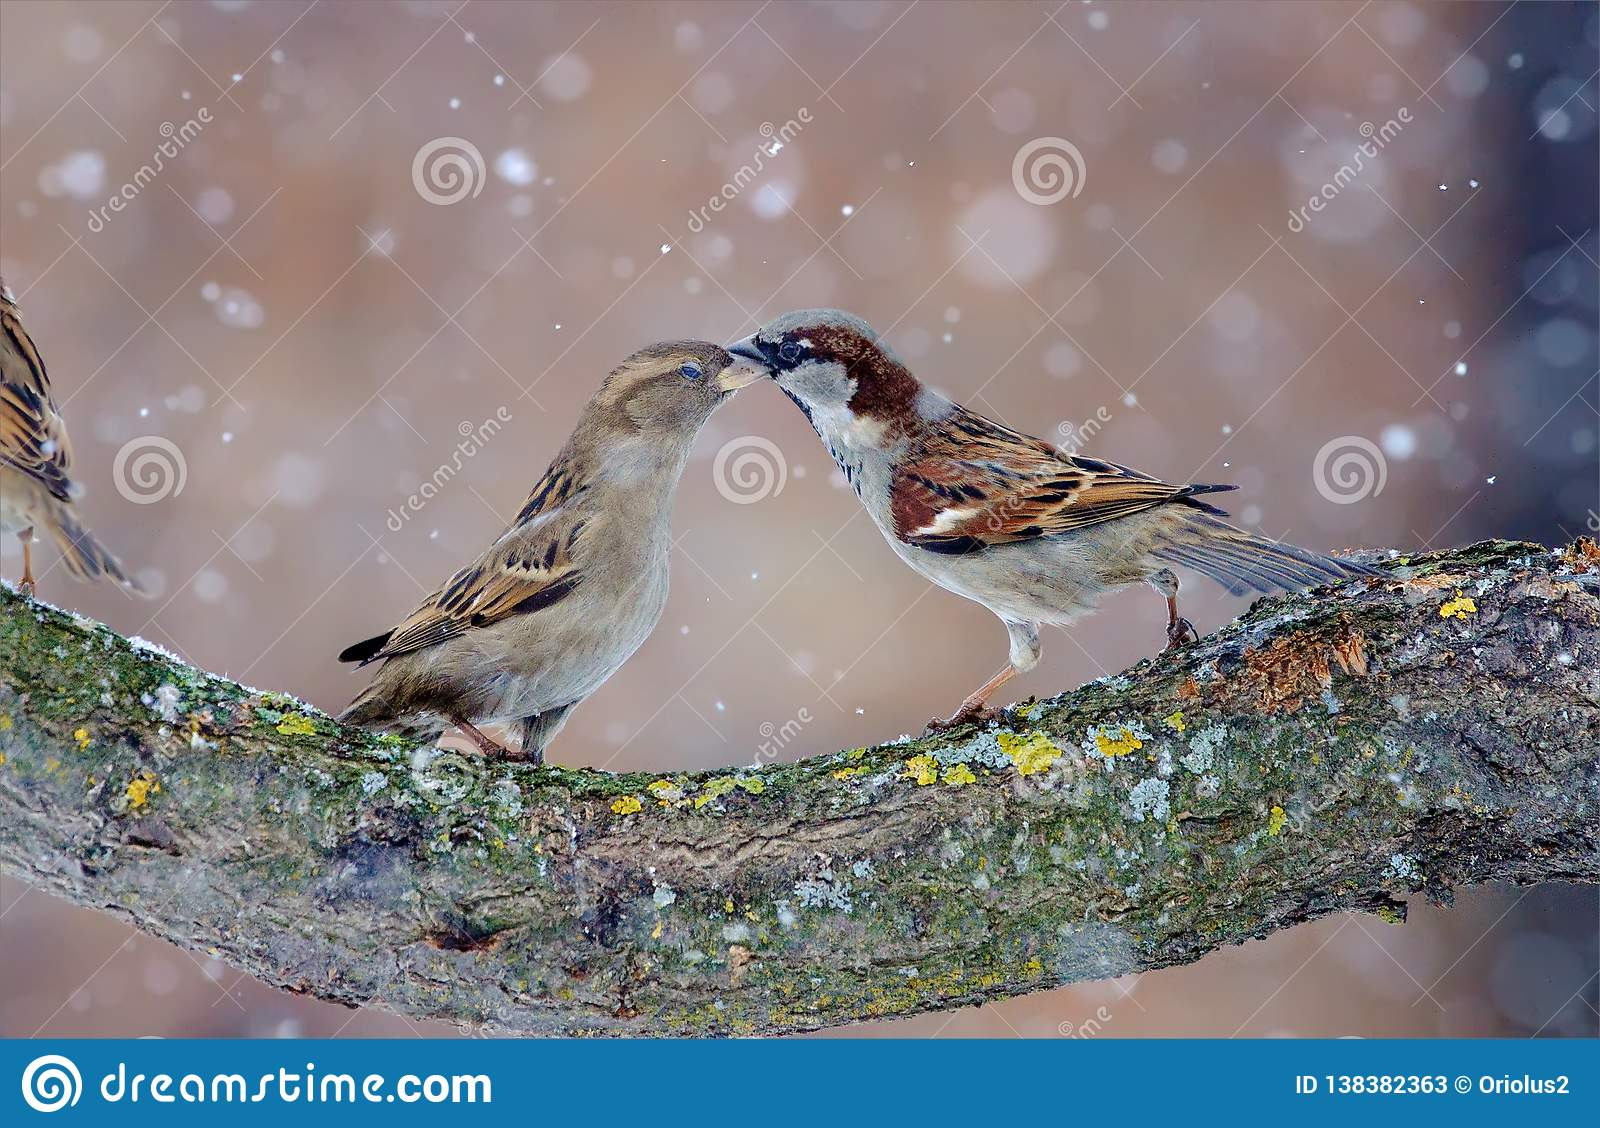 Male and female House sparrows dancing in snow storm